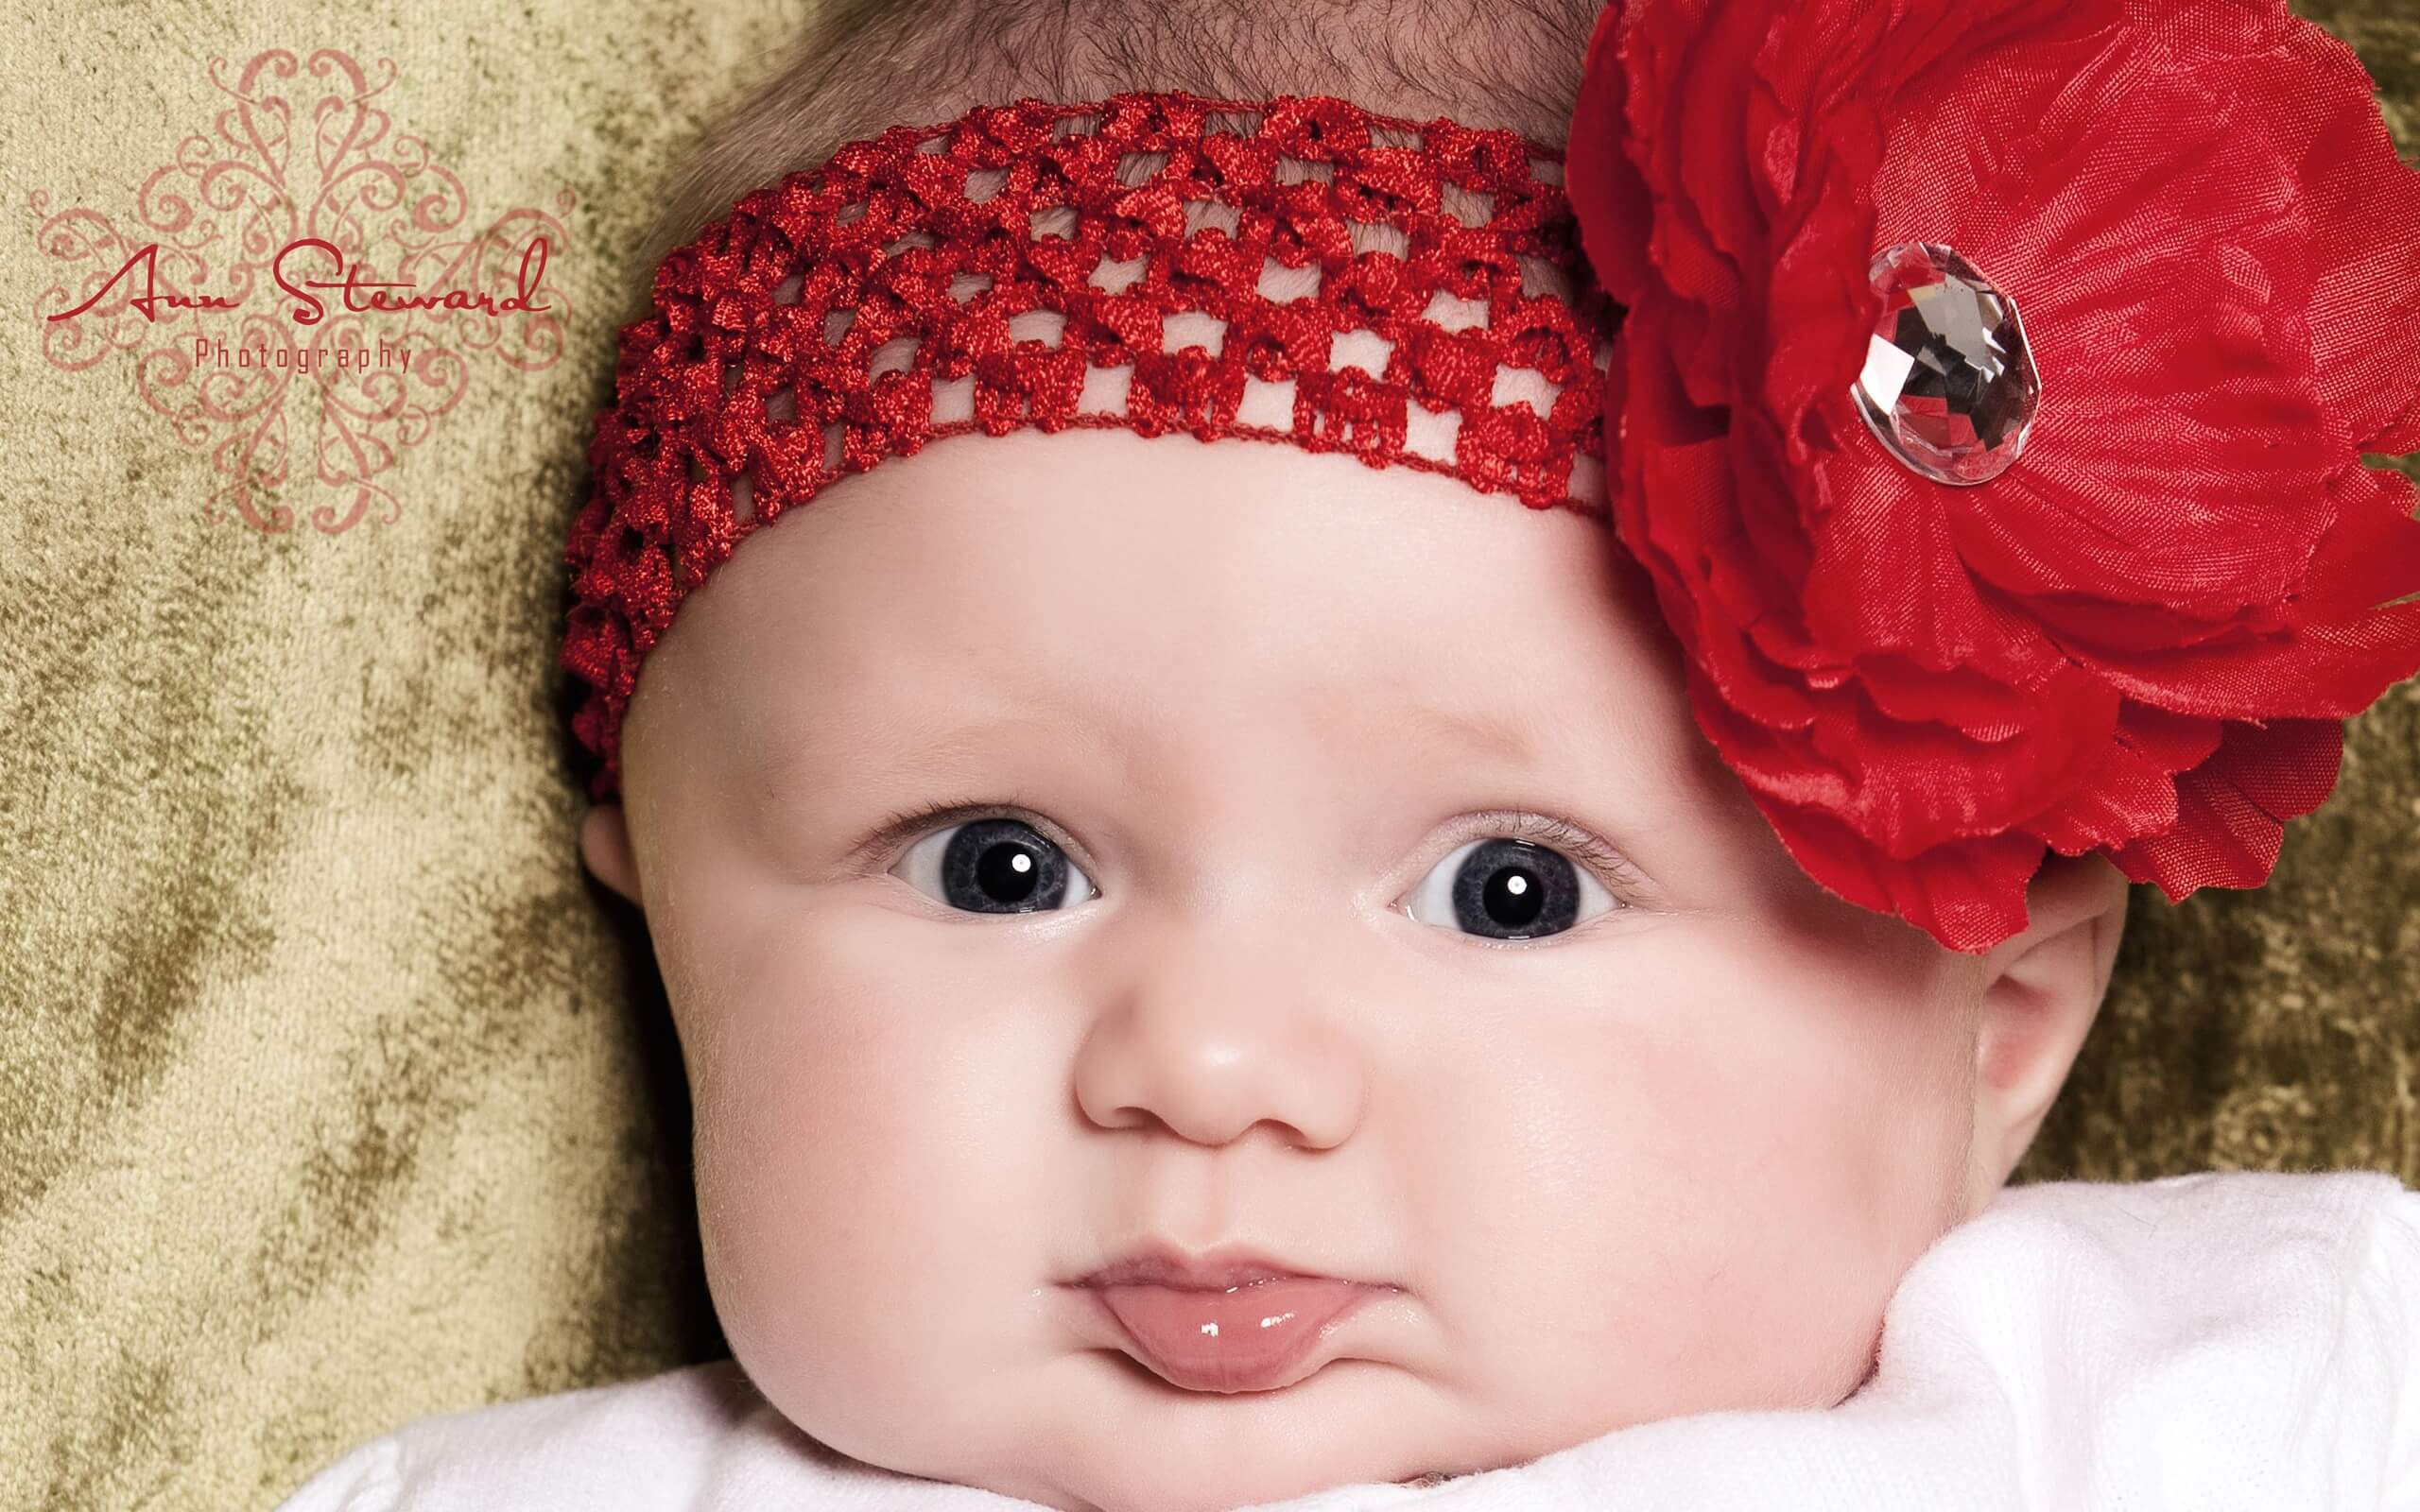 Cute Baby Photos Download Cute Baby Wallpapers   incom